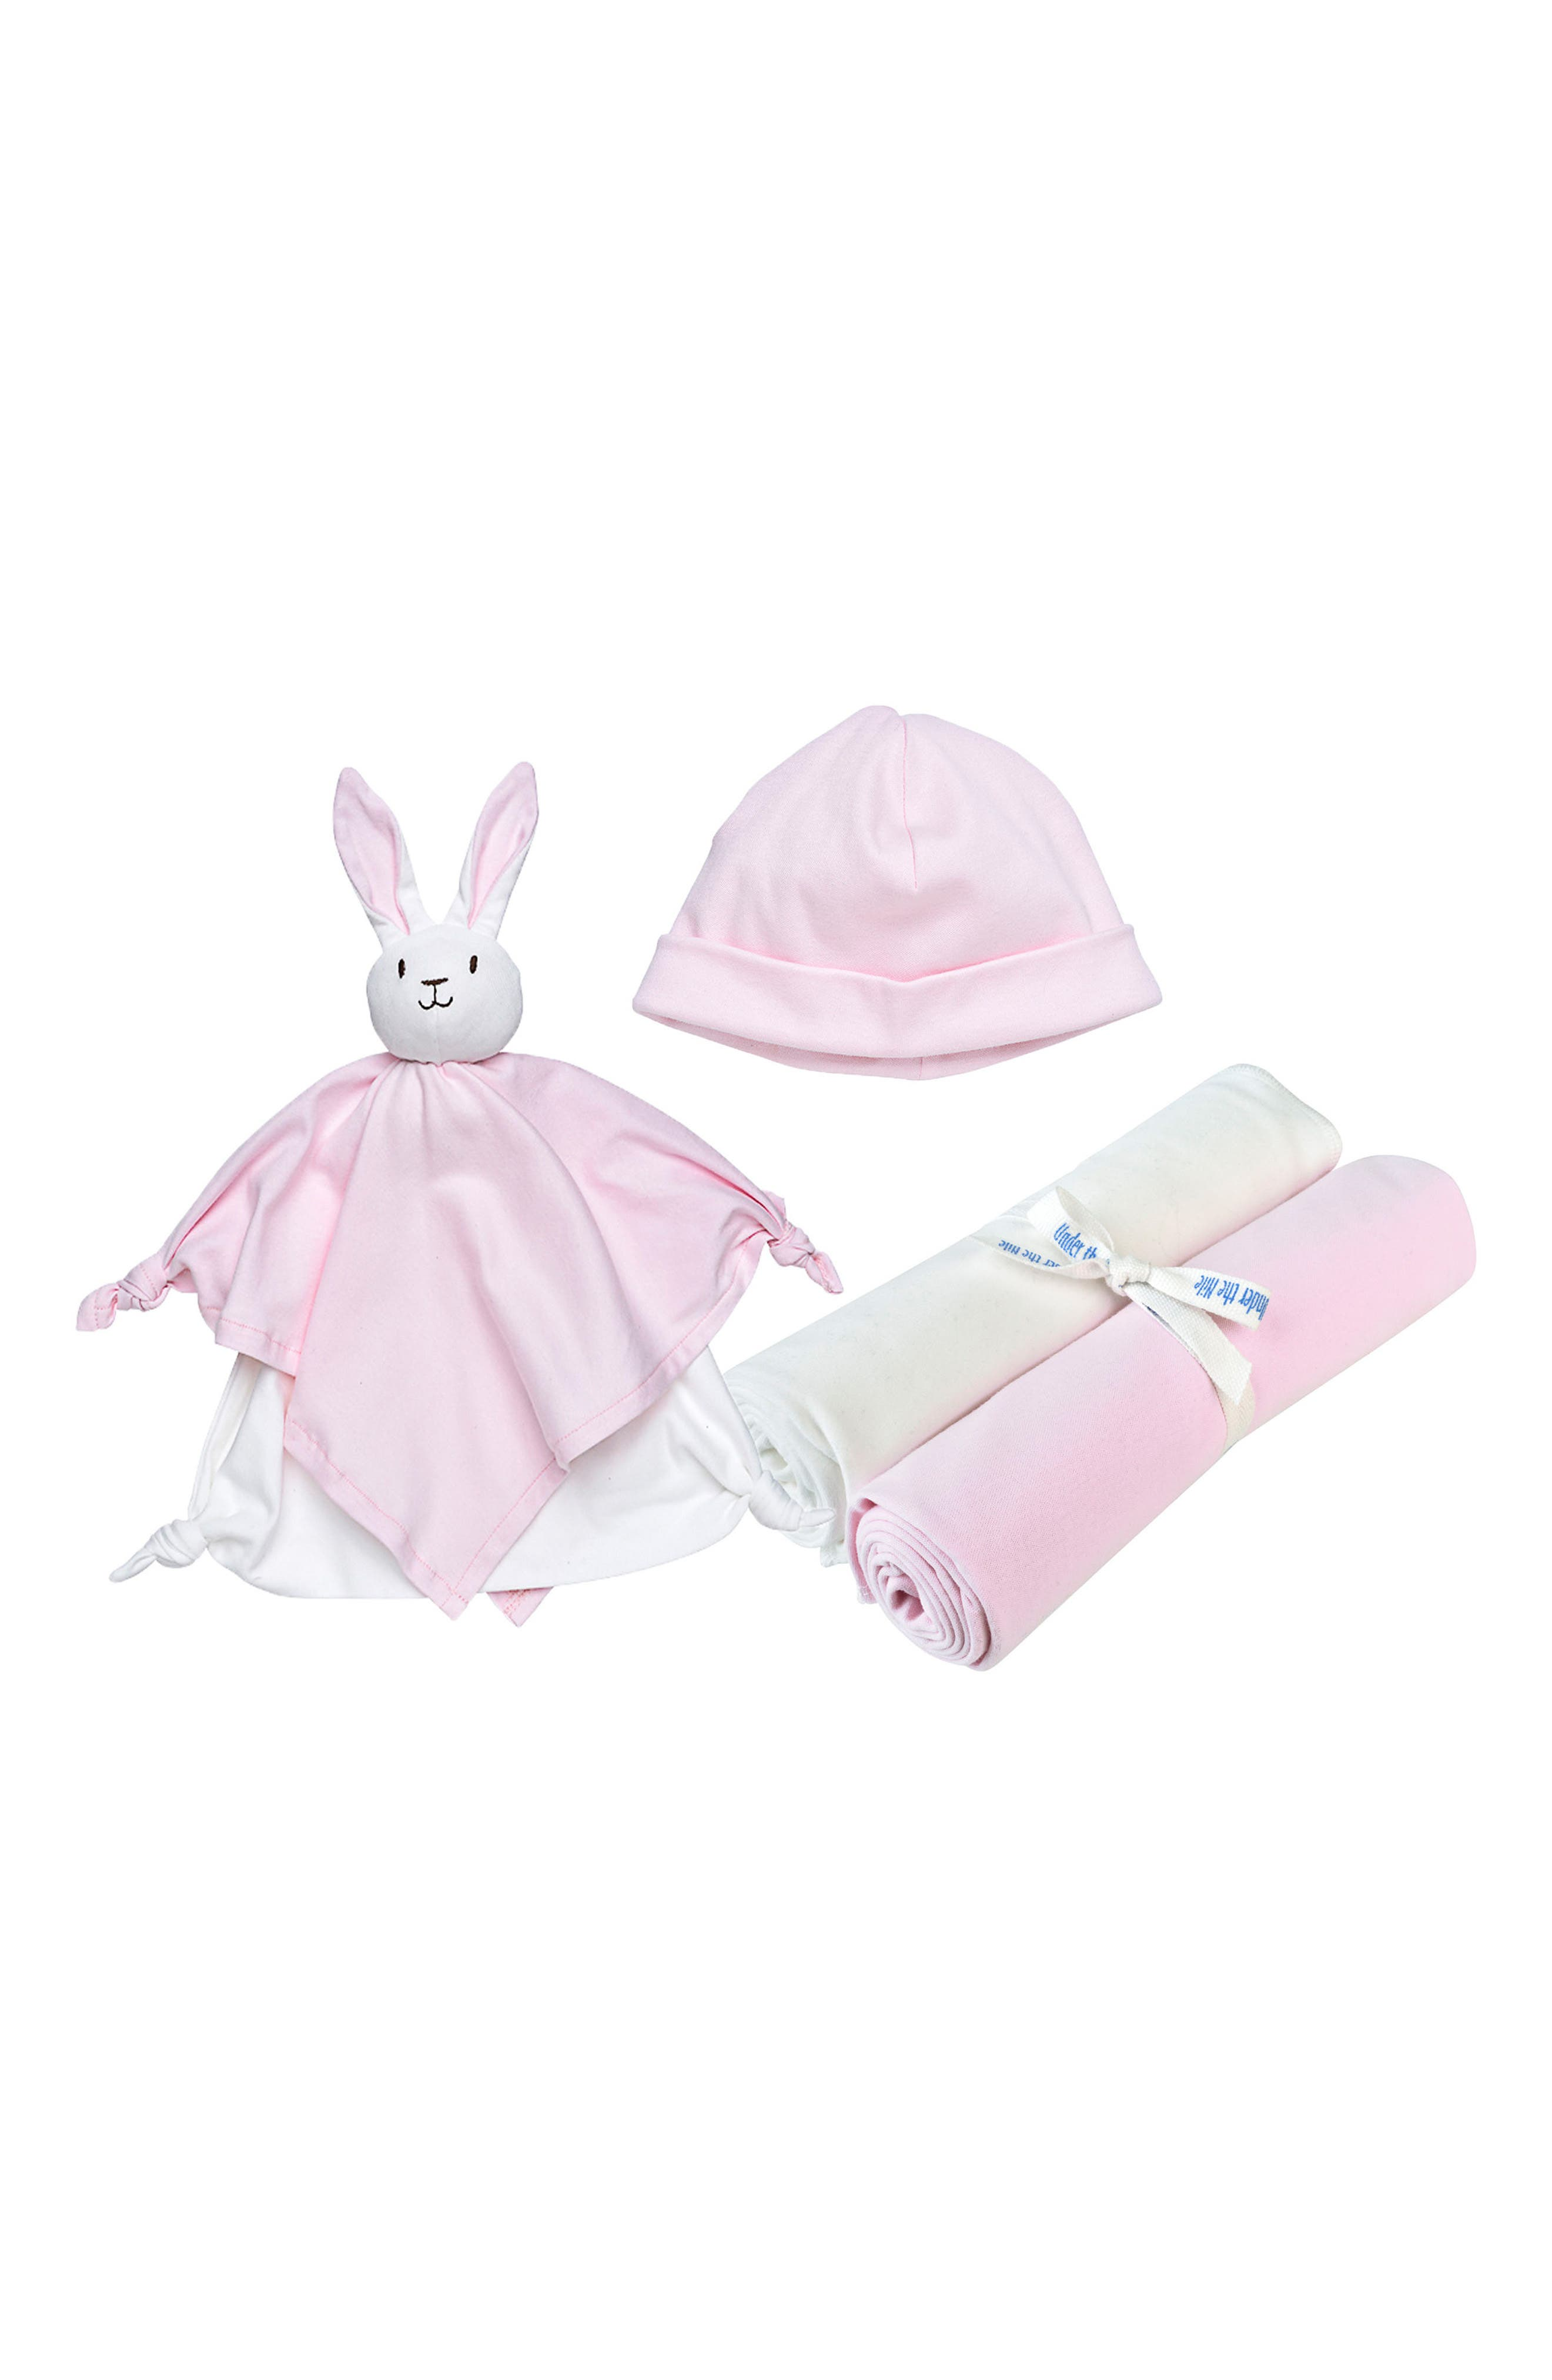 4-Piece Swaddle Blanket, Beanie & Rabbit Lovey Toy Set,                             Main thumbnail 1, color,                             Pink